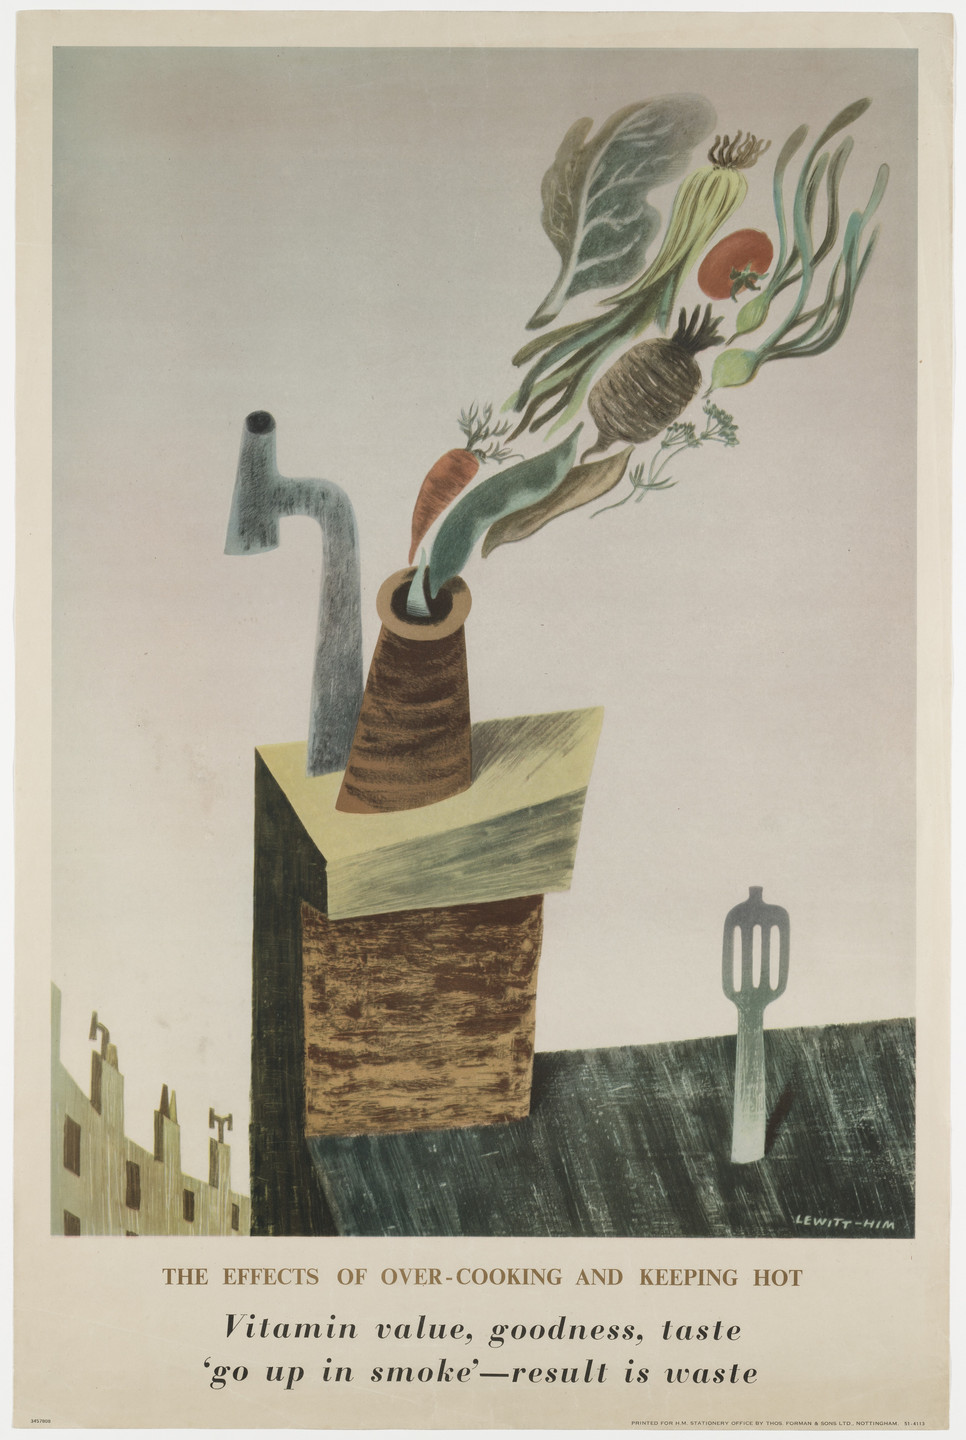 Jan Lewitt, George Him. The Effects of Overcooking and Keeping Hot. c.1944